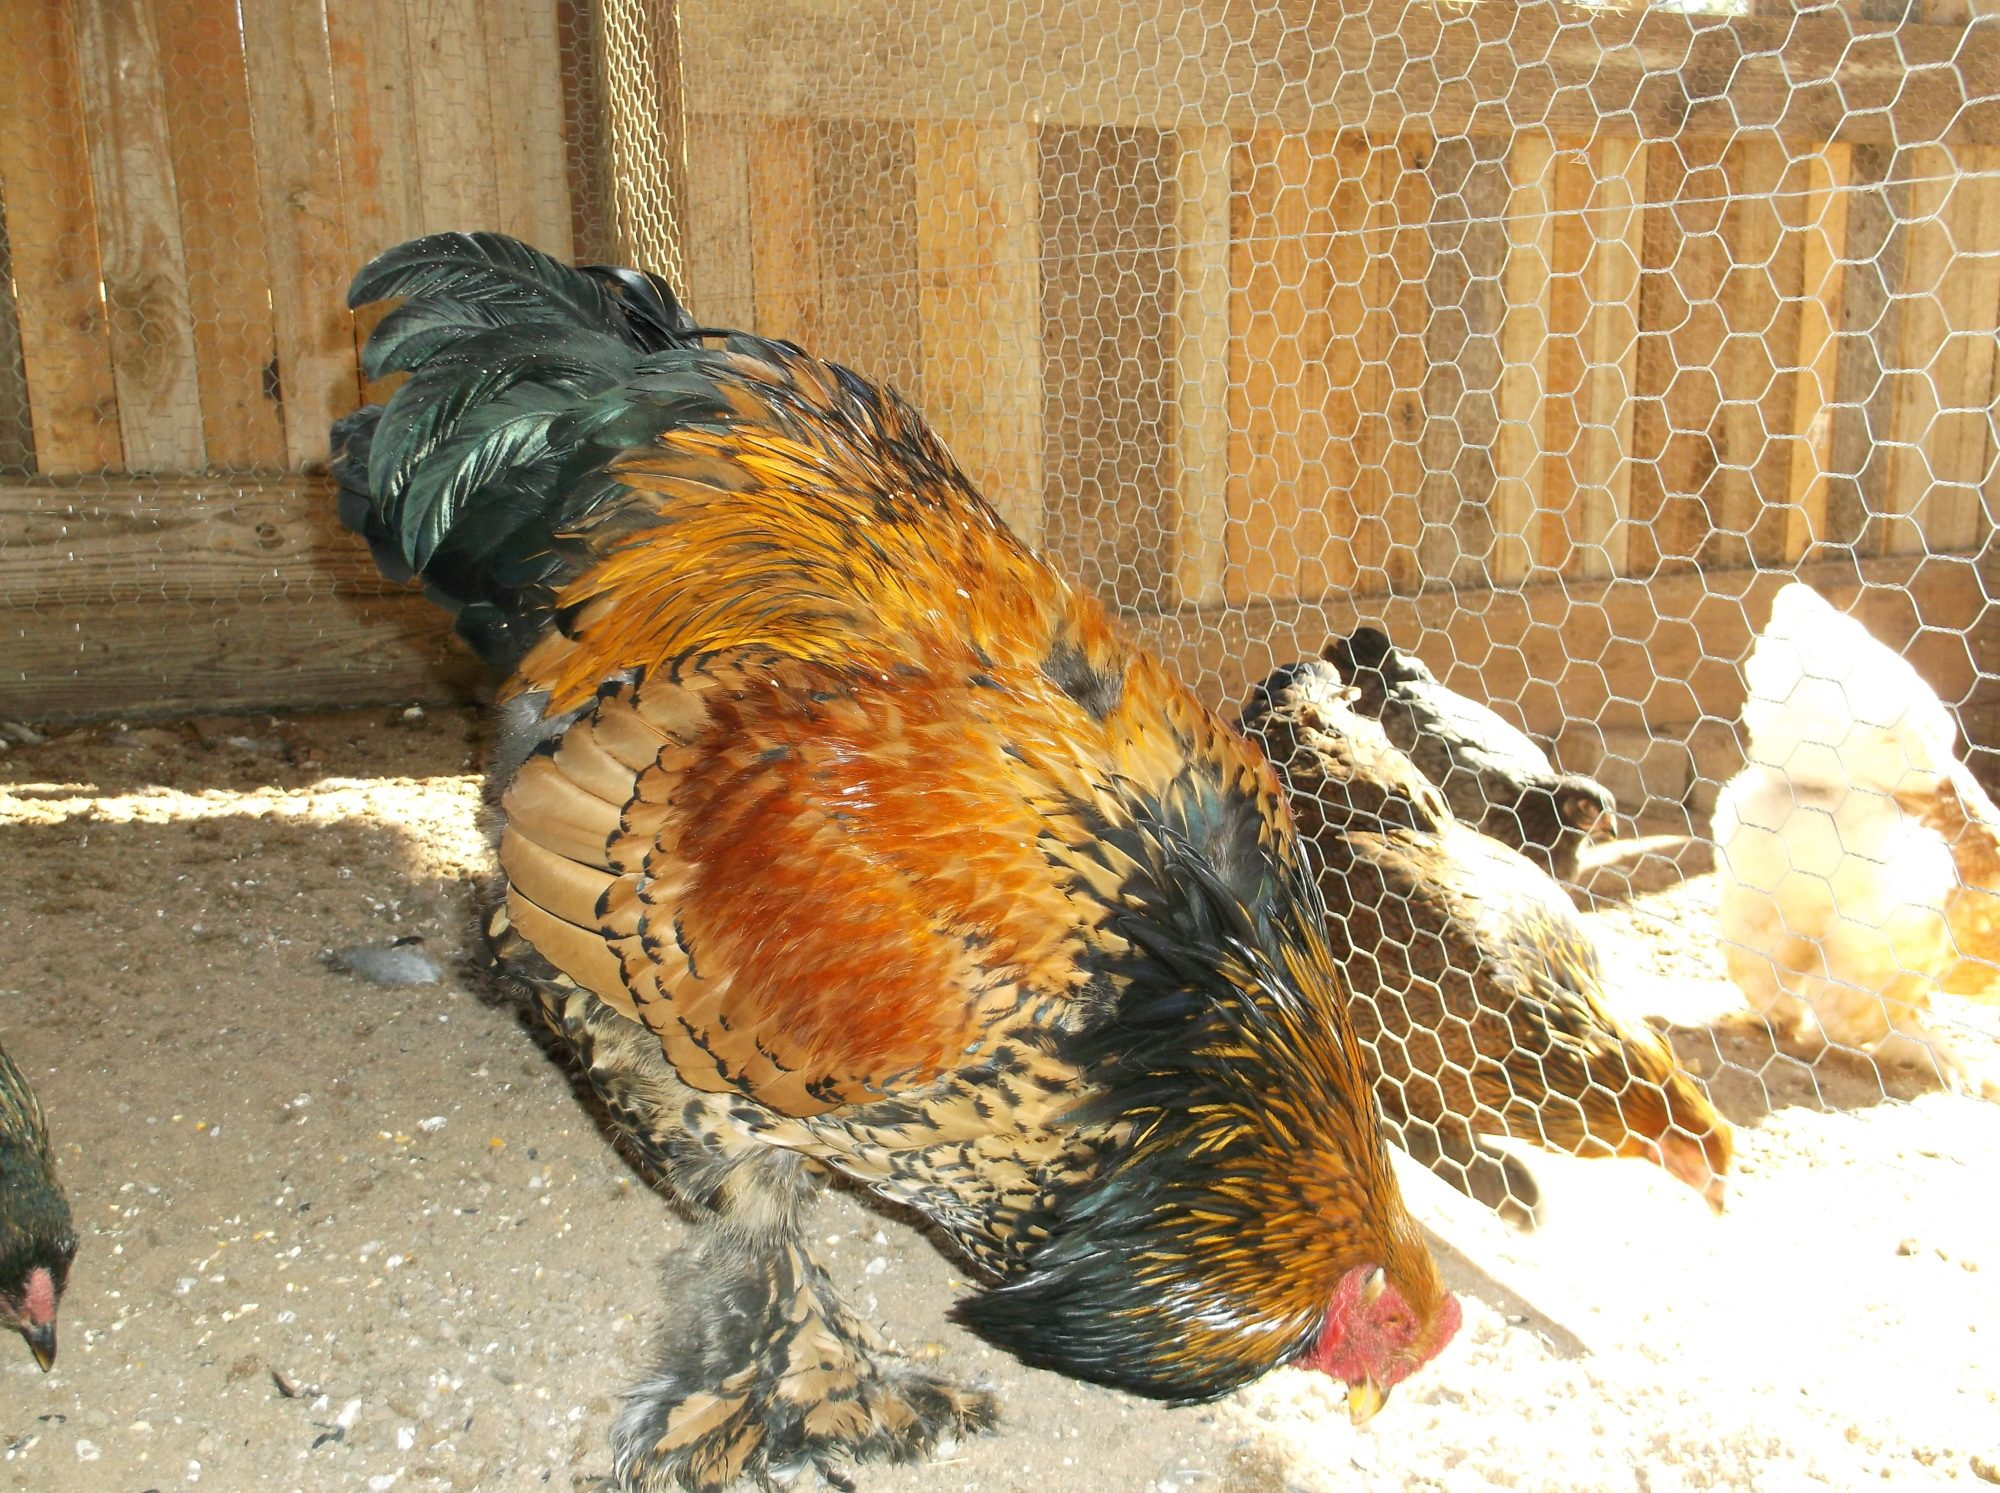 Gold Laced cockerel @ 9 months